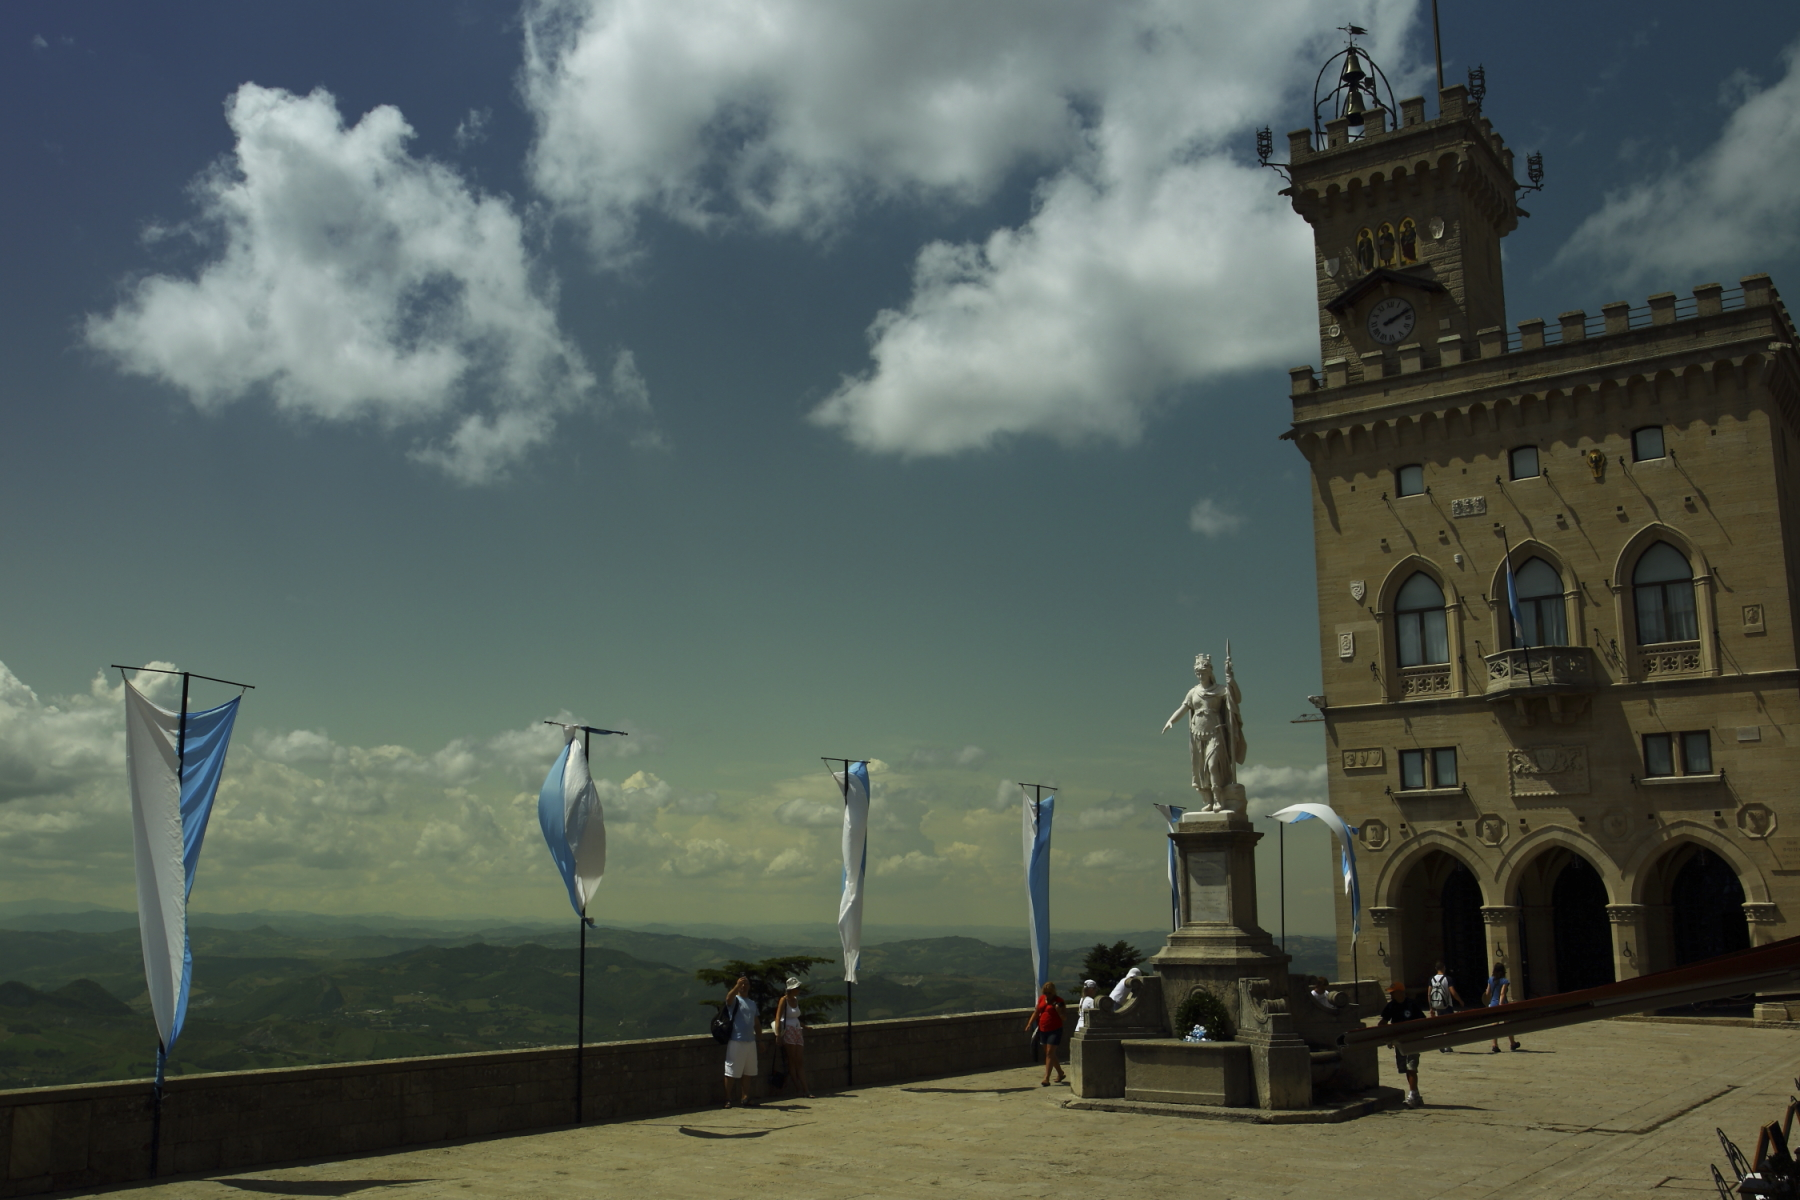 San Marino, Republic of. In the middle of Italy